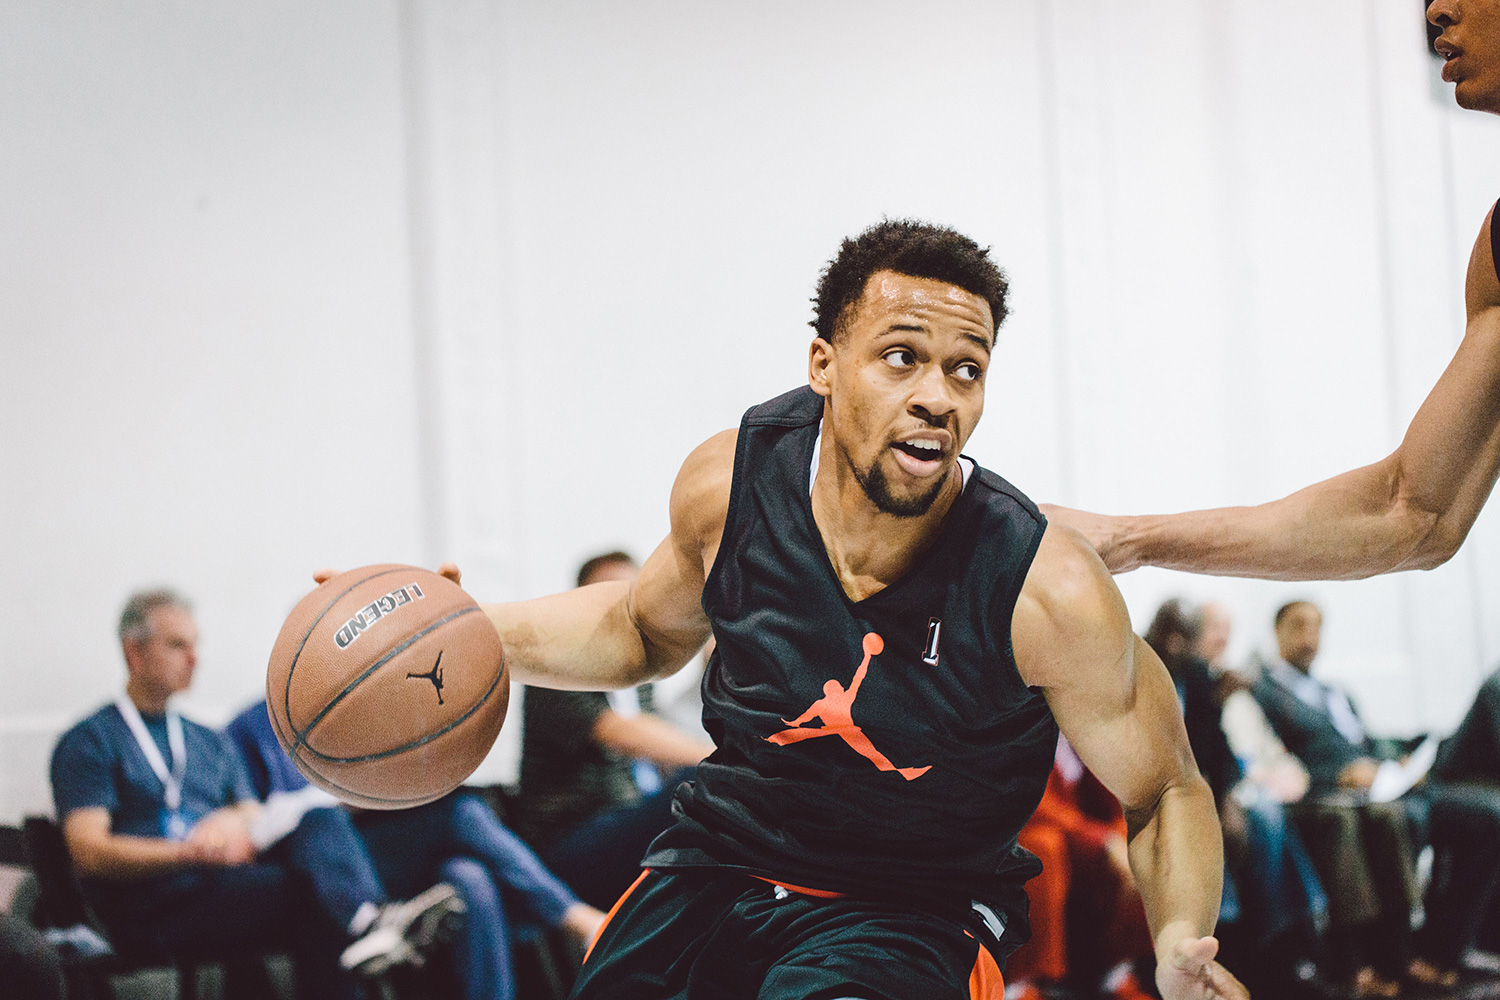 The West team ultimately won the game 118–116 but it was the East's team Isaiah Briscoe who was the star of the show. Due to proximity of his hometown in Jersey, Briscoe's confidence was on a different level.